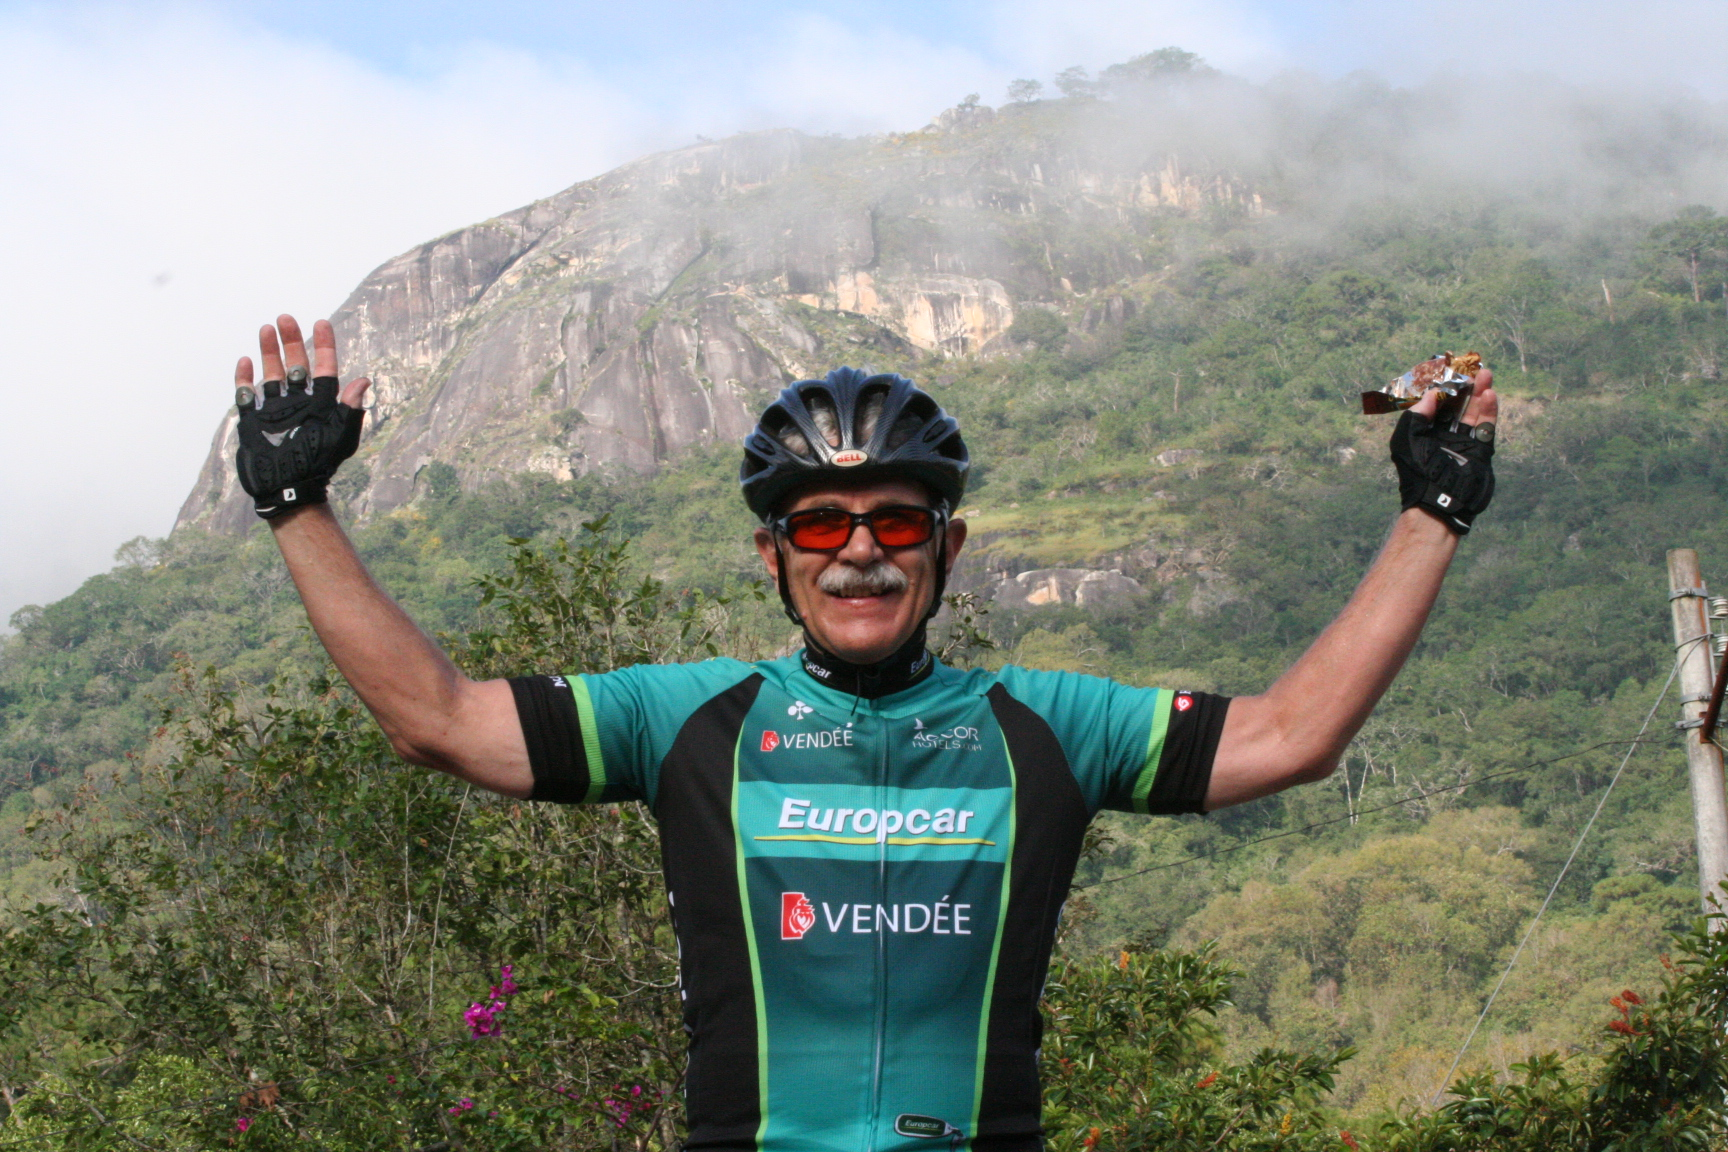 Puerto Vallarta Bike Tours - Come take a challenging ride in the mountains with us